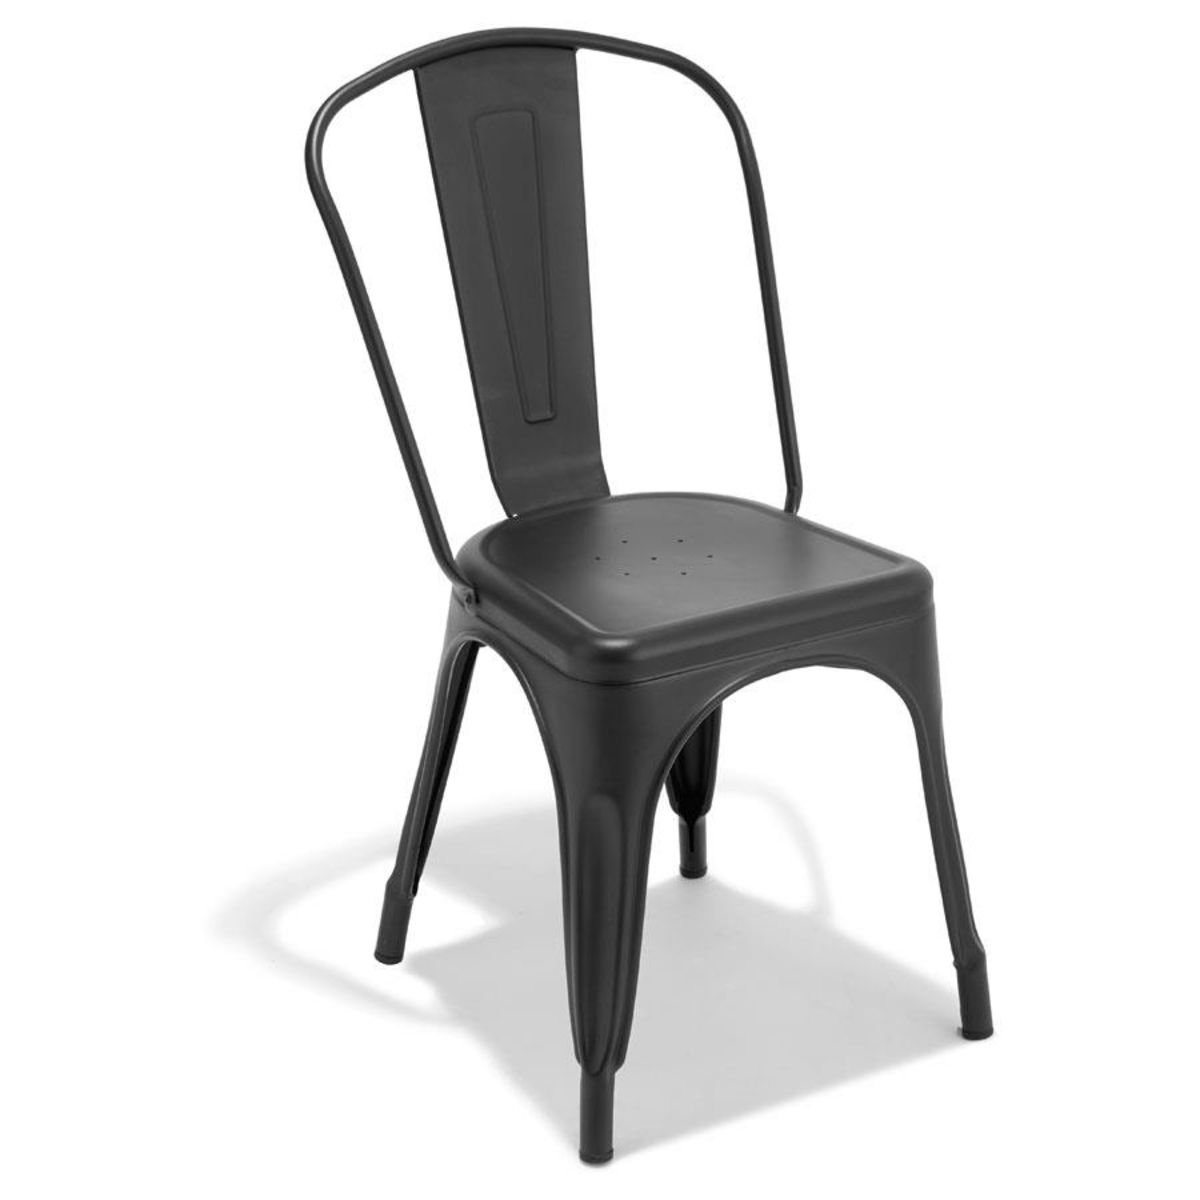 Matte Black Metal Chair From Kmart  $35   Home Decor Gorgeous Kmart Kitchen Chairs Design Inspiration